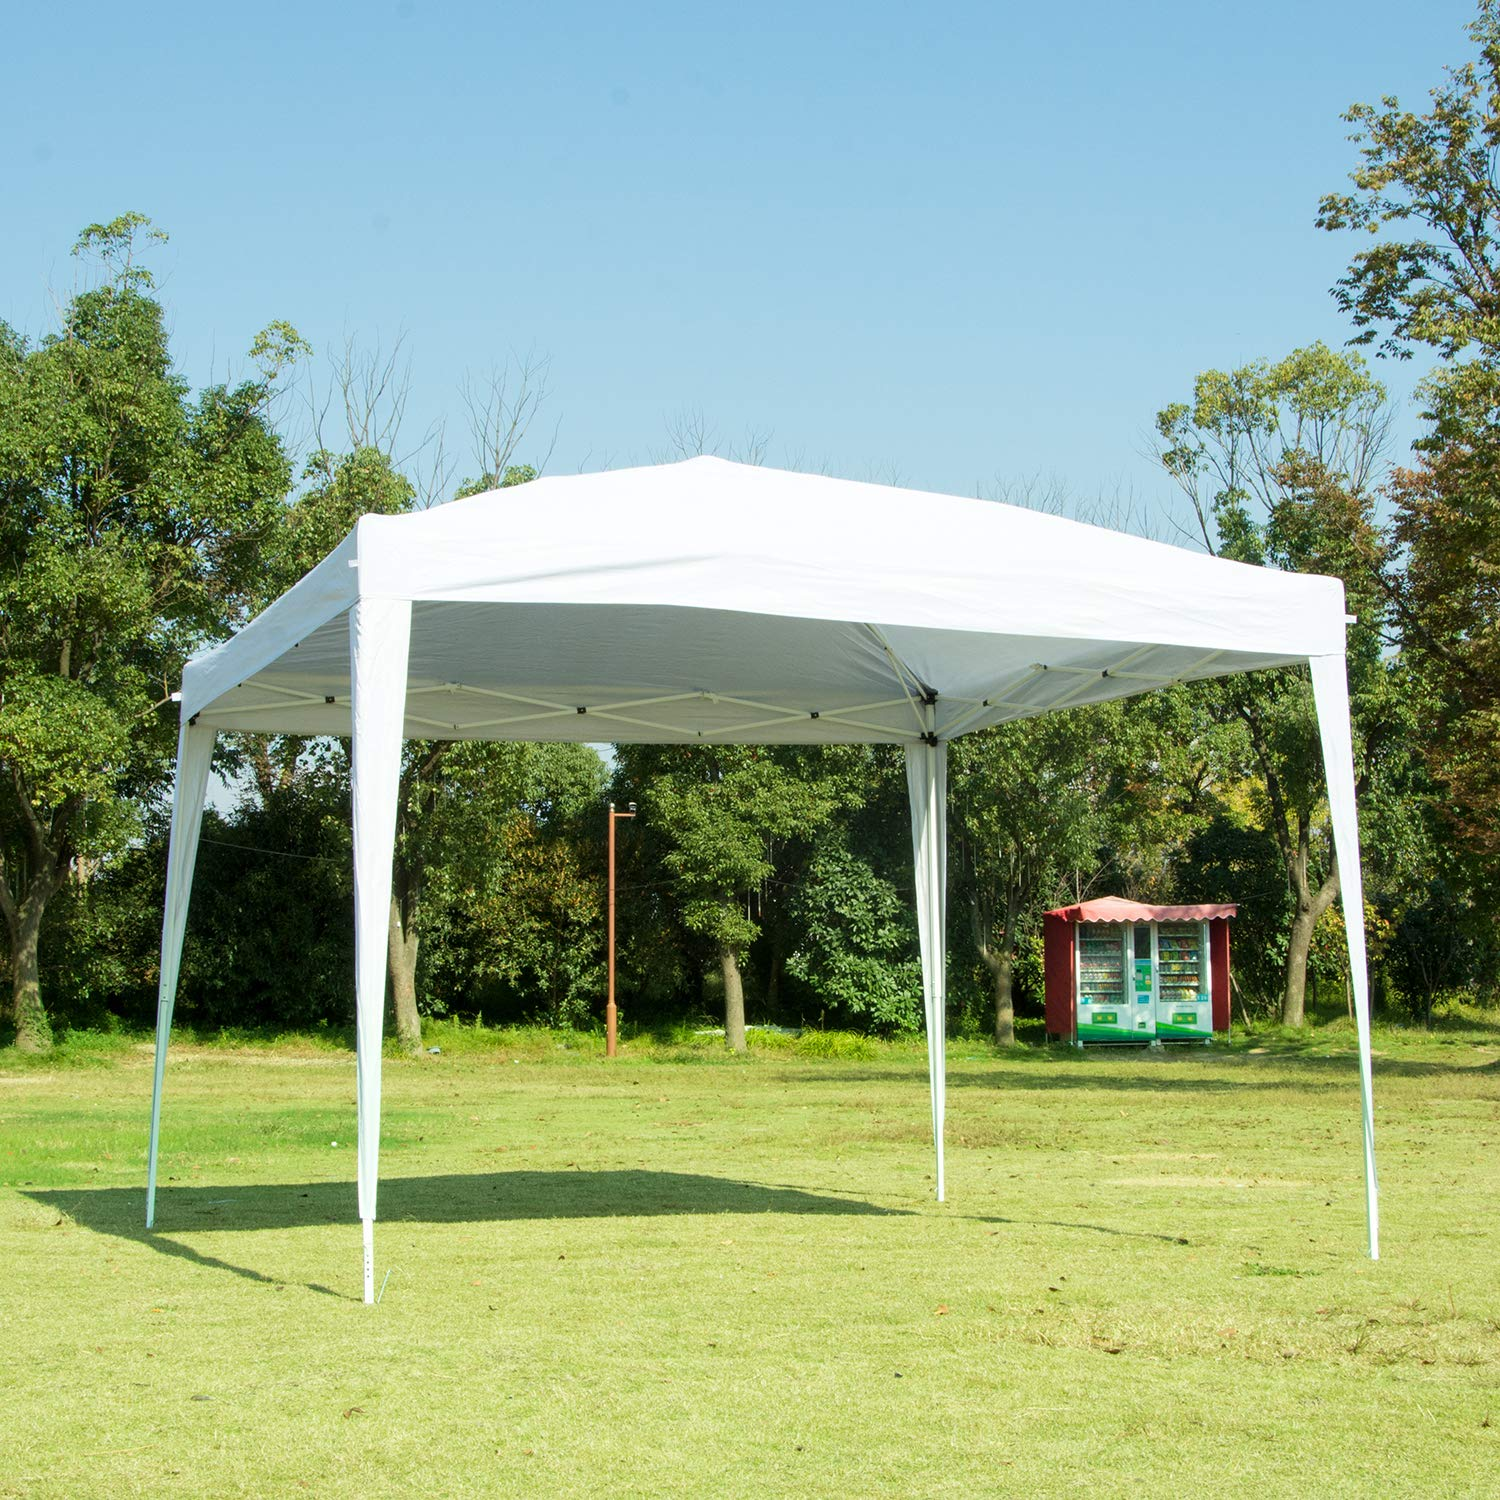 Charahome Canopy Tent Pop Up Portable Shade Instant Heavy